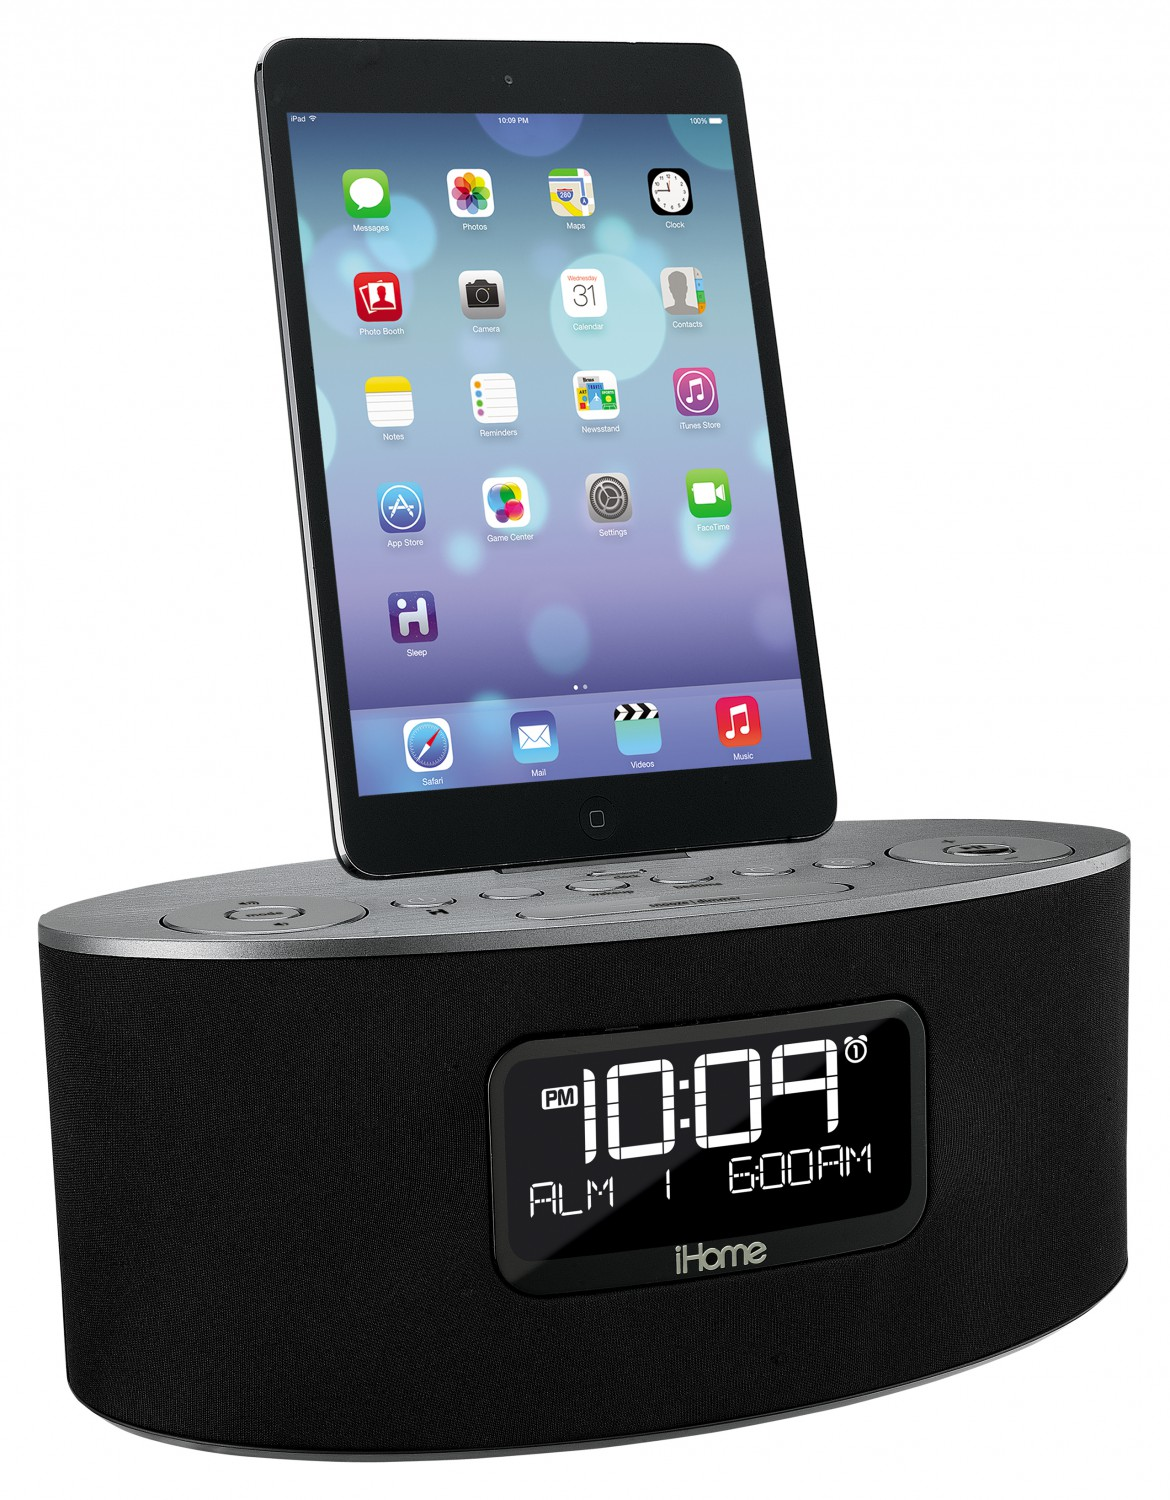 ihome idl46 dual ladestation fm radio wecker lightning usb iphone ipad ipod ebay. Black Bedroom Furniture Sets. Home Design Ideas